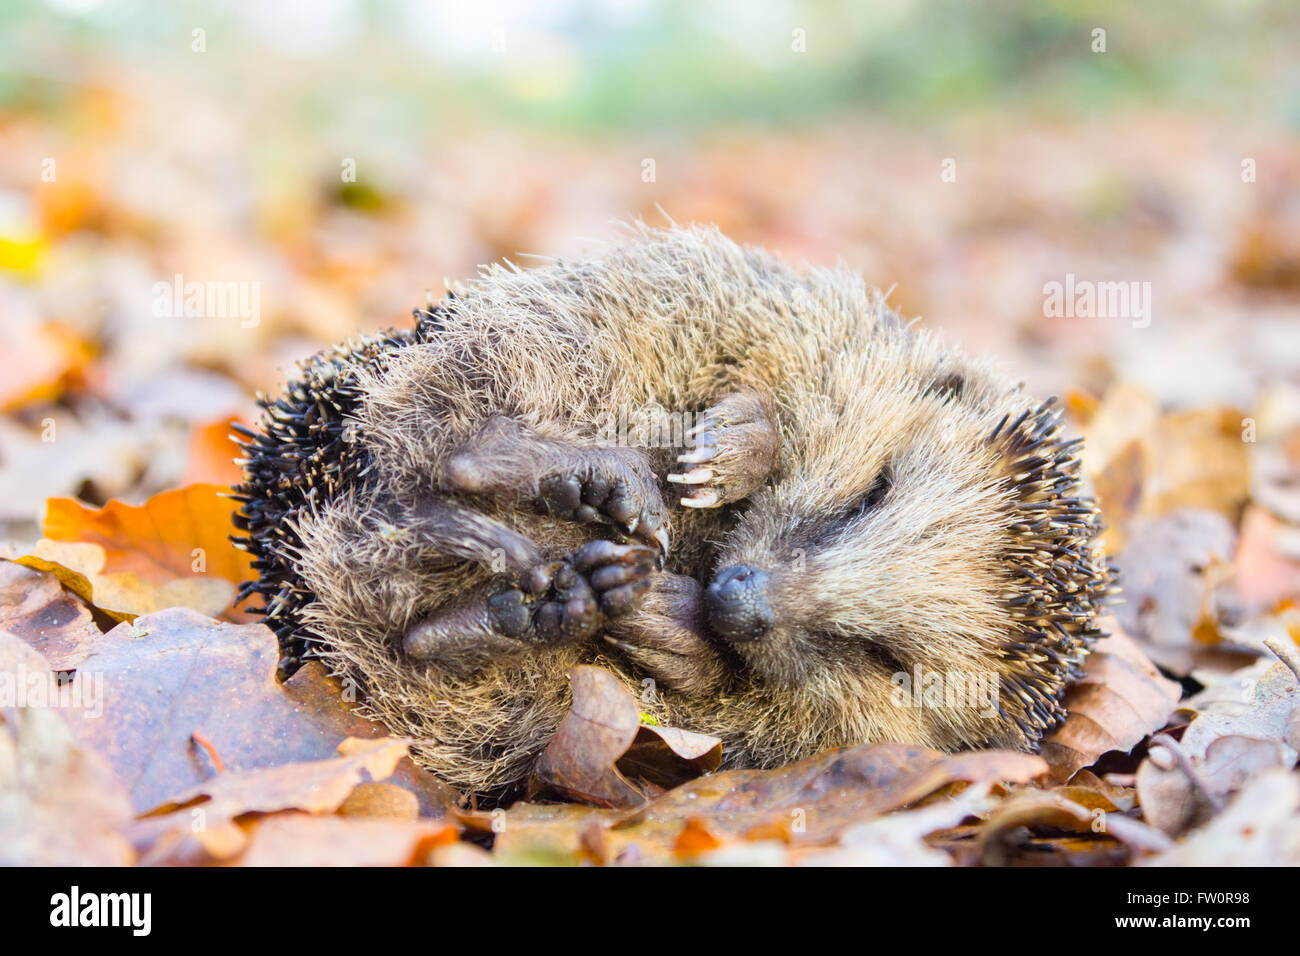 Curled up hedgehog lying and sleeping on autumn leaves in forest Stock Photo